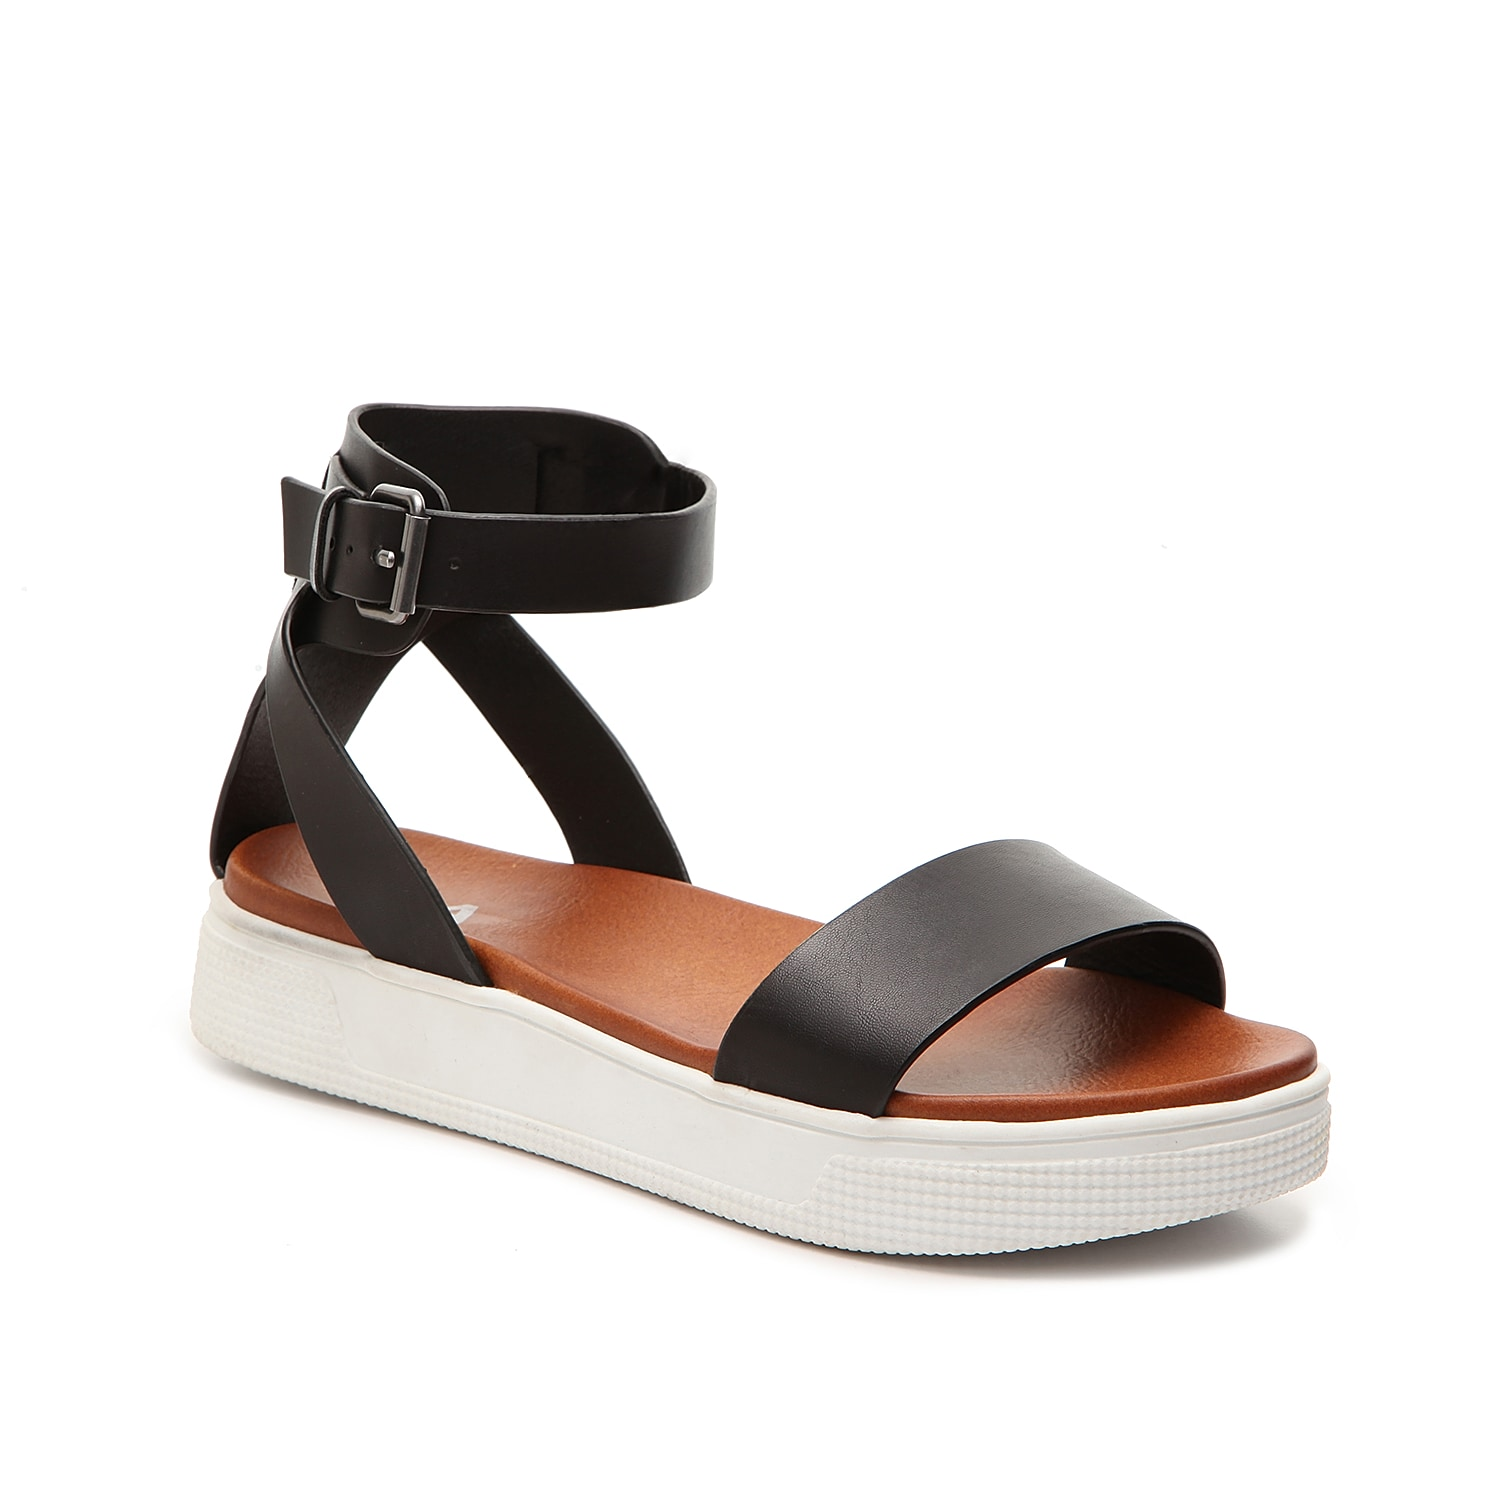 Give your casual summer wardrobe a fresh and fashionable update with the Ellen sandal from Mia! With two-piece styling and a sporty flatform, this versatile pair is perfect for pairing with jeans and sundresses.